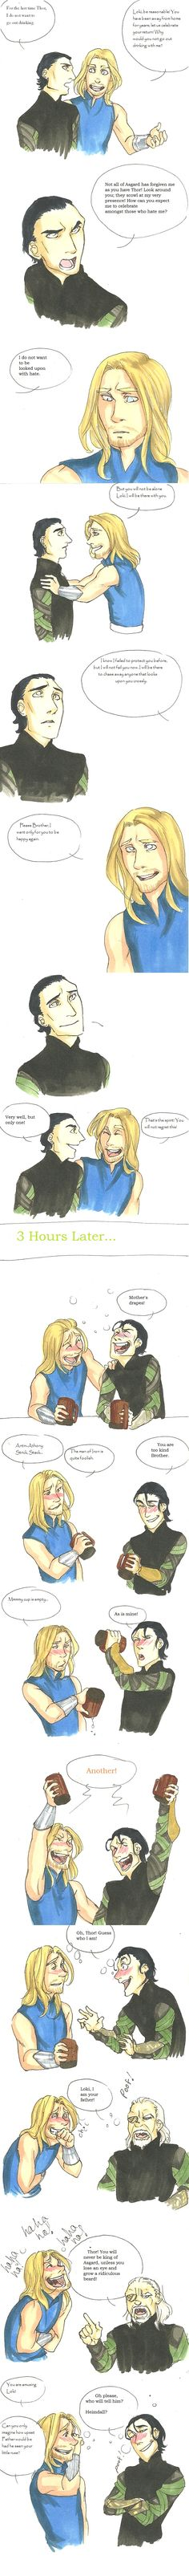 So cute. This also brings to light one of my biggest problems with Loki - besides the whole trying to take over Midgard and destroying NYC and killing Coulson (still not over that btw) thing - he spends so much time hating Odin for not treating him like Thor but completely misses out on the fact that Thor still loves him and considers him his brother, despite everything.